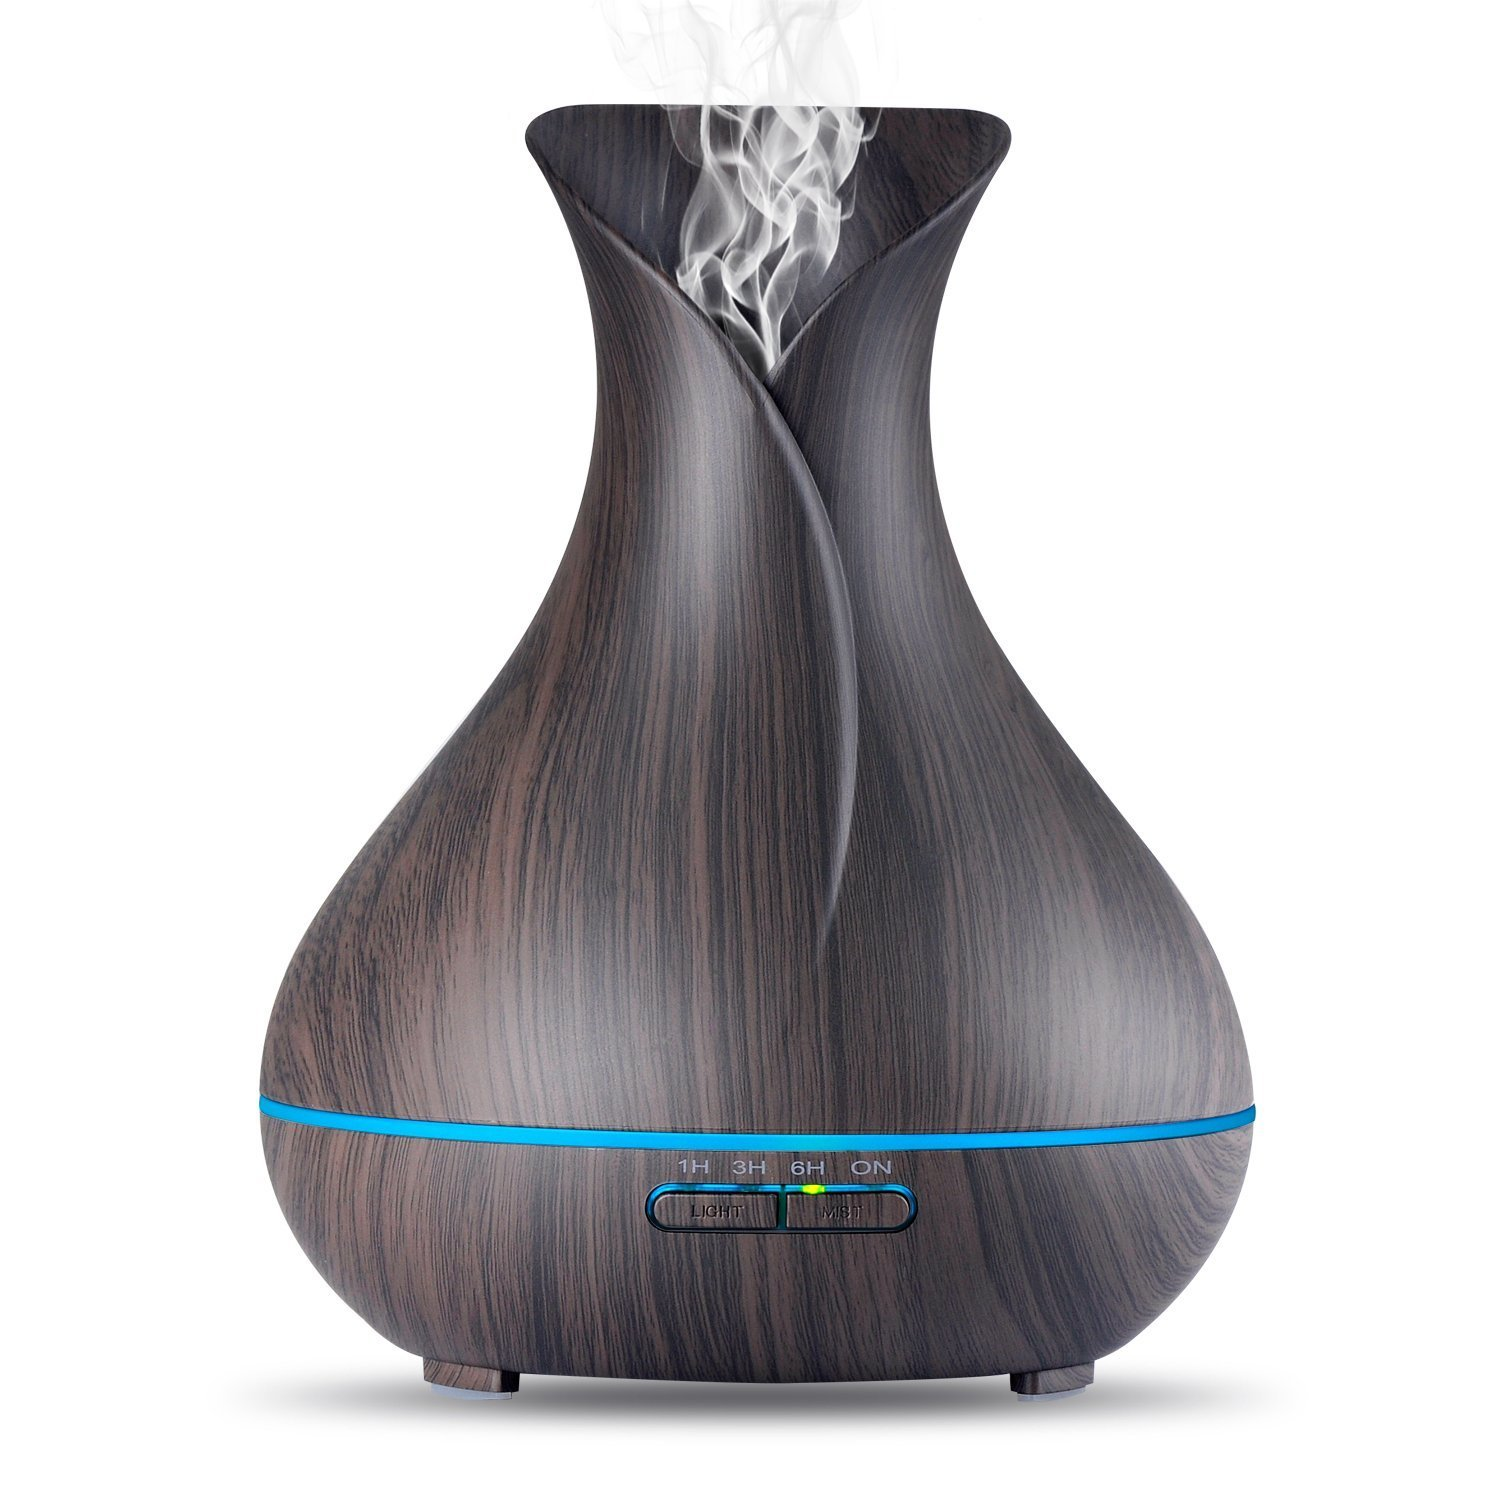 Ledsniper 400ml Ultrasonic Cool Mist Aroma Humidifier with Waterless Auto Shut-off, 7 color LED lights for Bedroom Living Room Spa Baby - Wood Grain